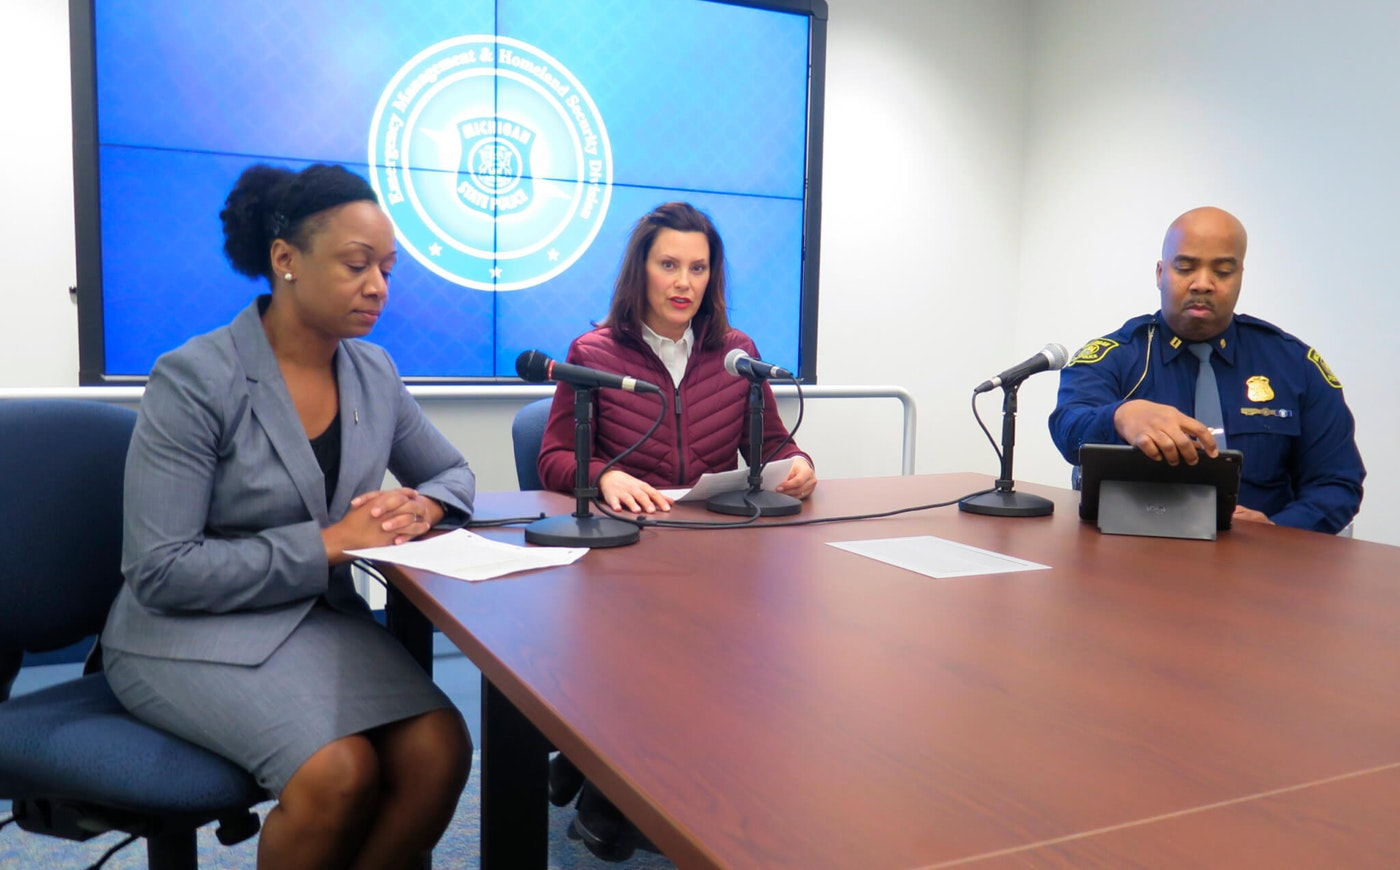 """FILE - In this March 10, 2020 file photo, Michigan Gov. Gretchen Whitmer, center, announces the state's first two cases of coronavirus, during a news conference in Windsor Township, Mich. At left is Dr. Joneigh Khaldun, the state's chief medical executive, and at right is Capt. Emmitt McGowan, deputy state director of emergency management and homeland security. Dr. Khaldun, announced Monday, May 4, 2020, that Michigan hospitals and physicians have """"broad discretion"""" to decide whether to continue delaying procedures during the pandemic. (AP Photo/David Eggert File)"""